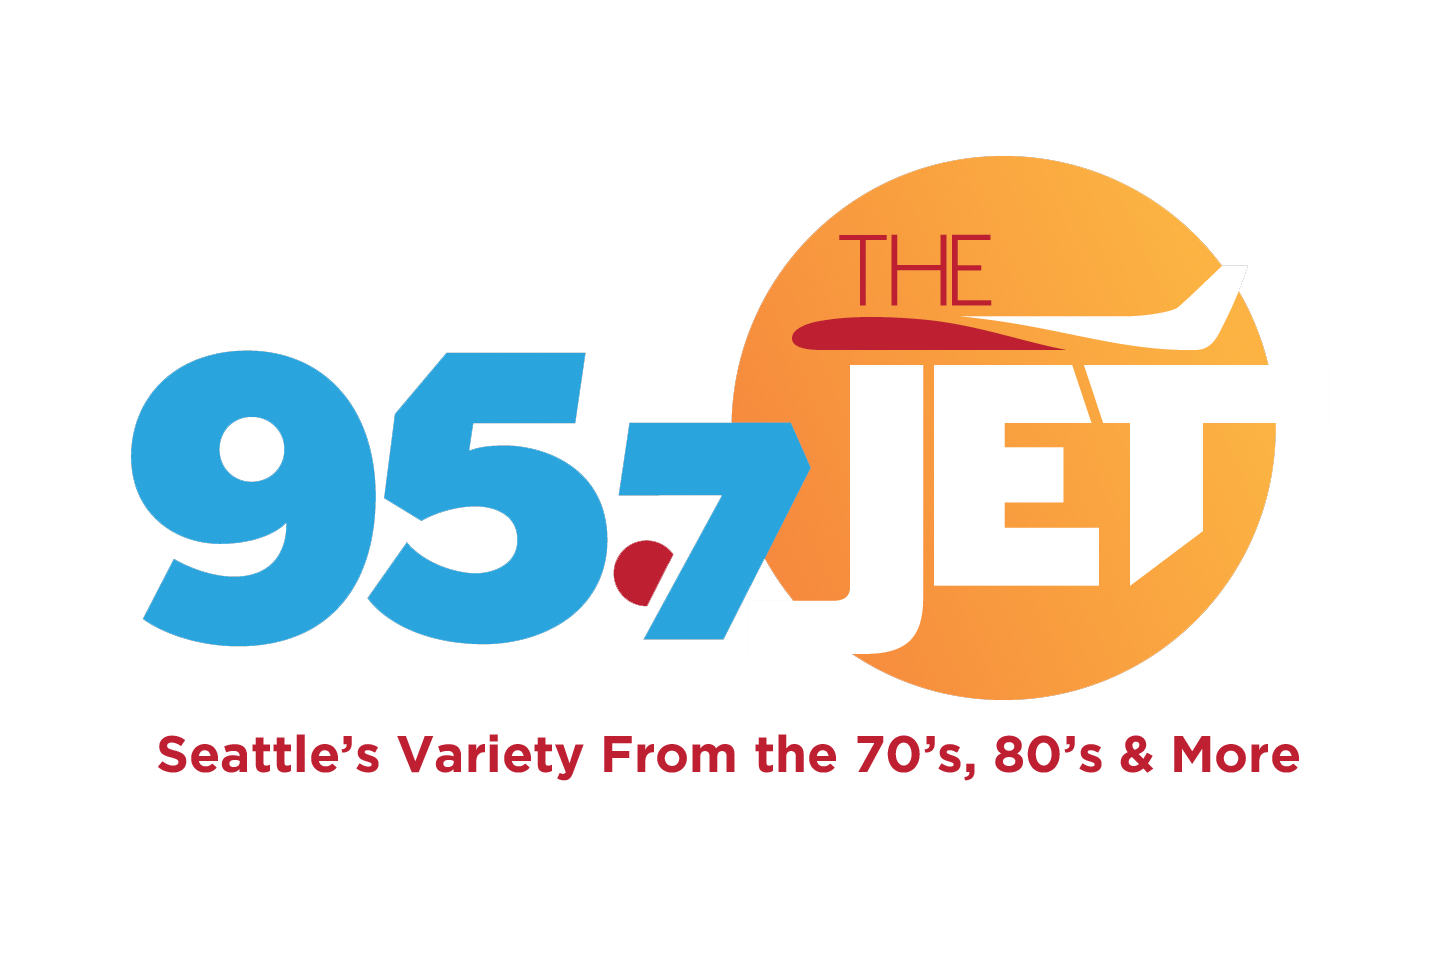 957TheJet NEW.png